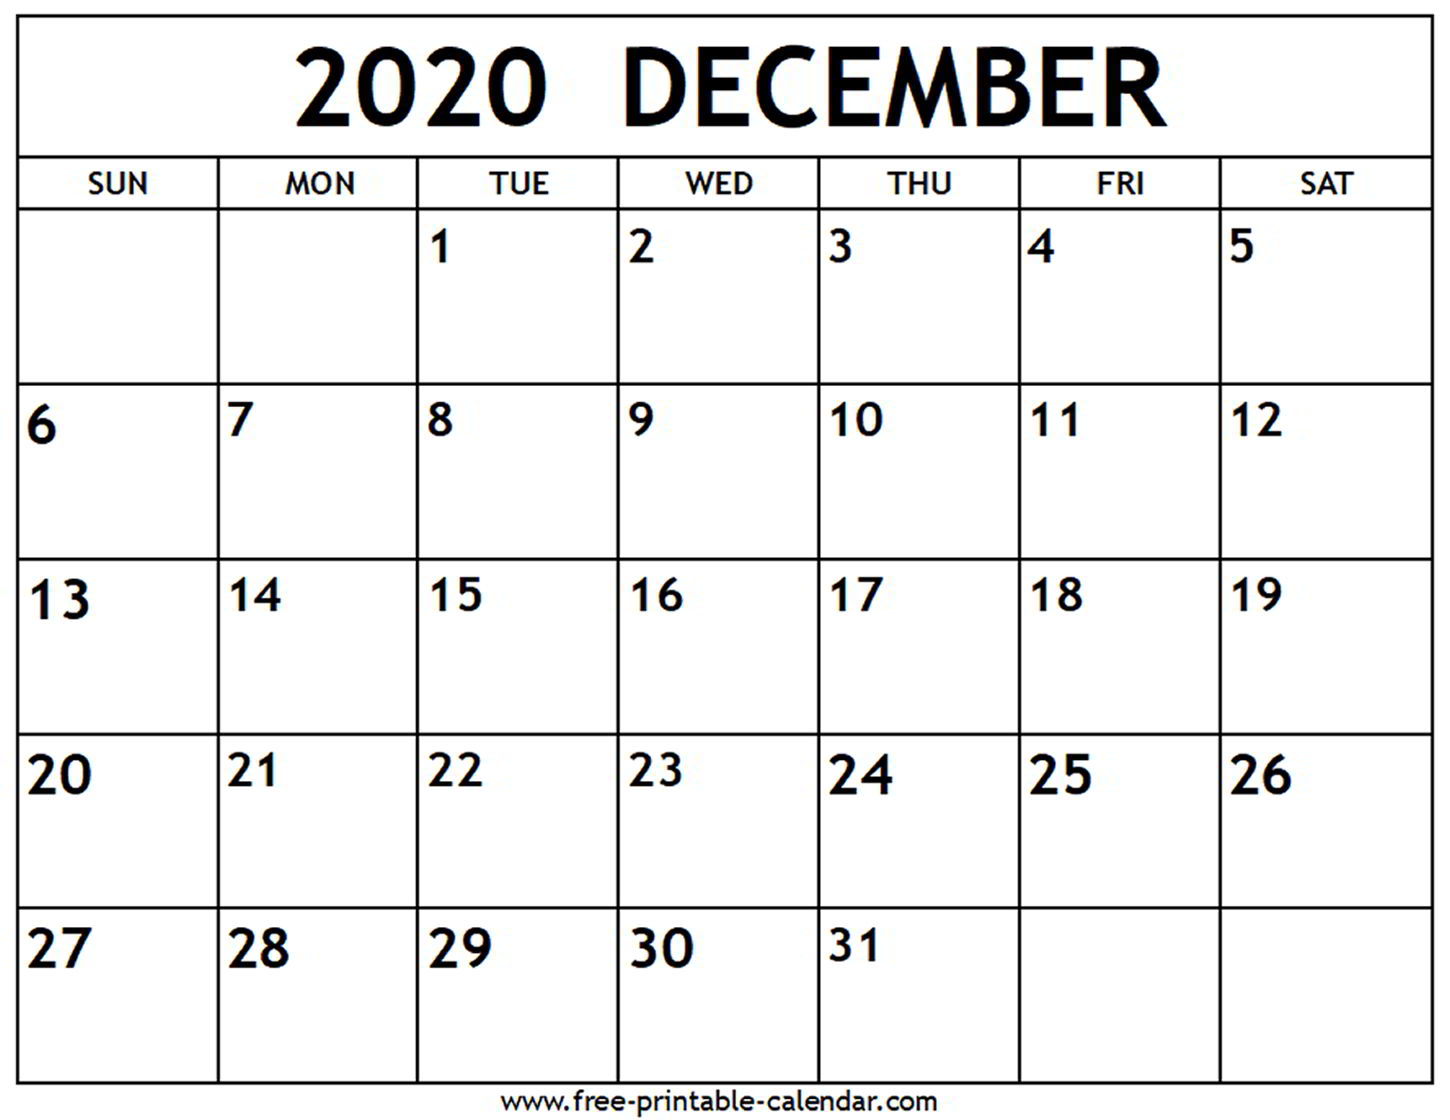 December 2020 Calendar  Freeprintablecalendar within Printable December Calender 2020